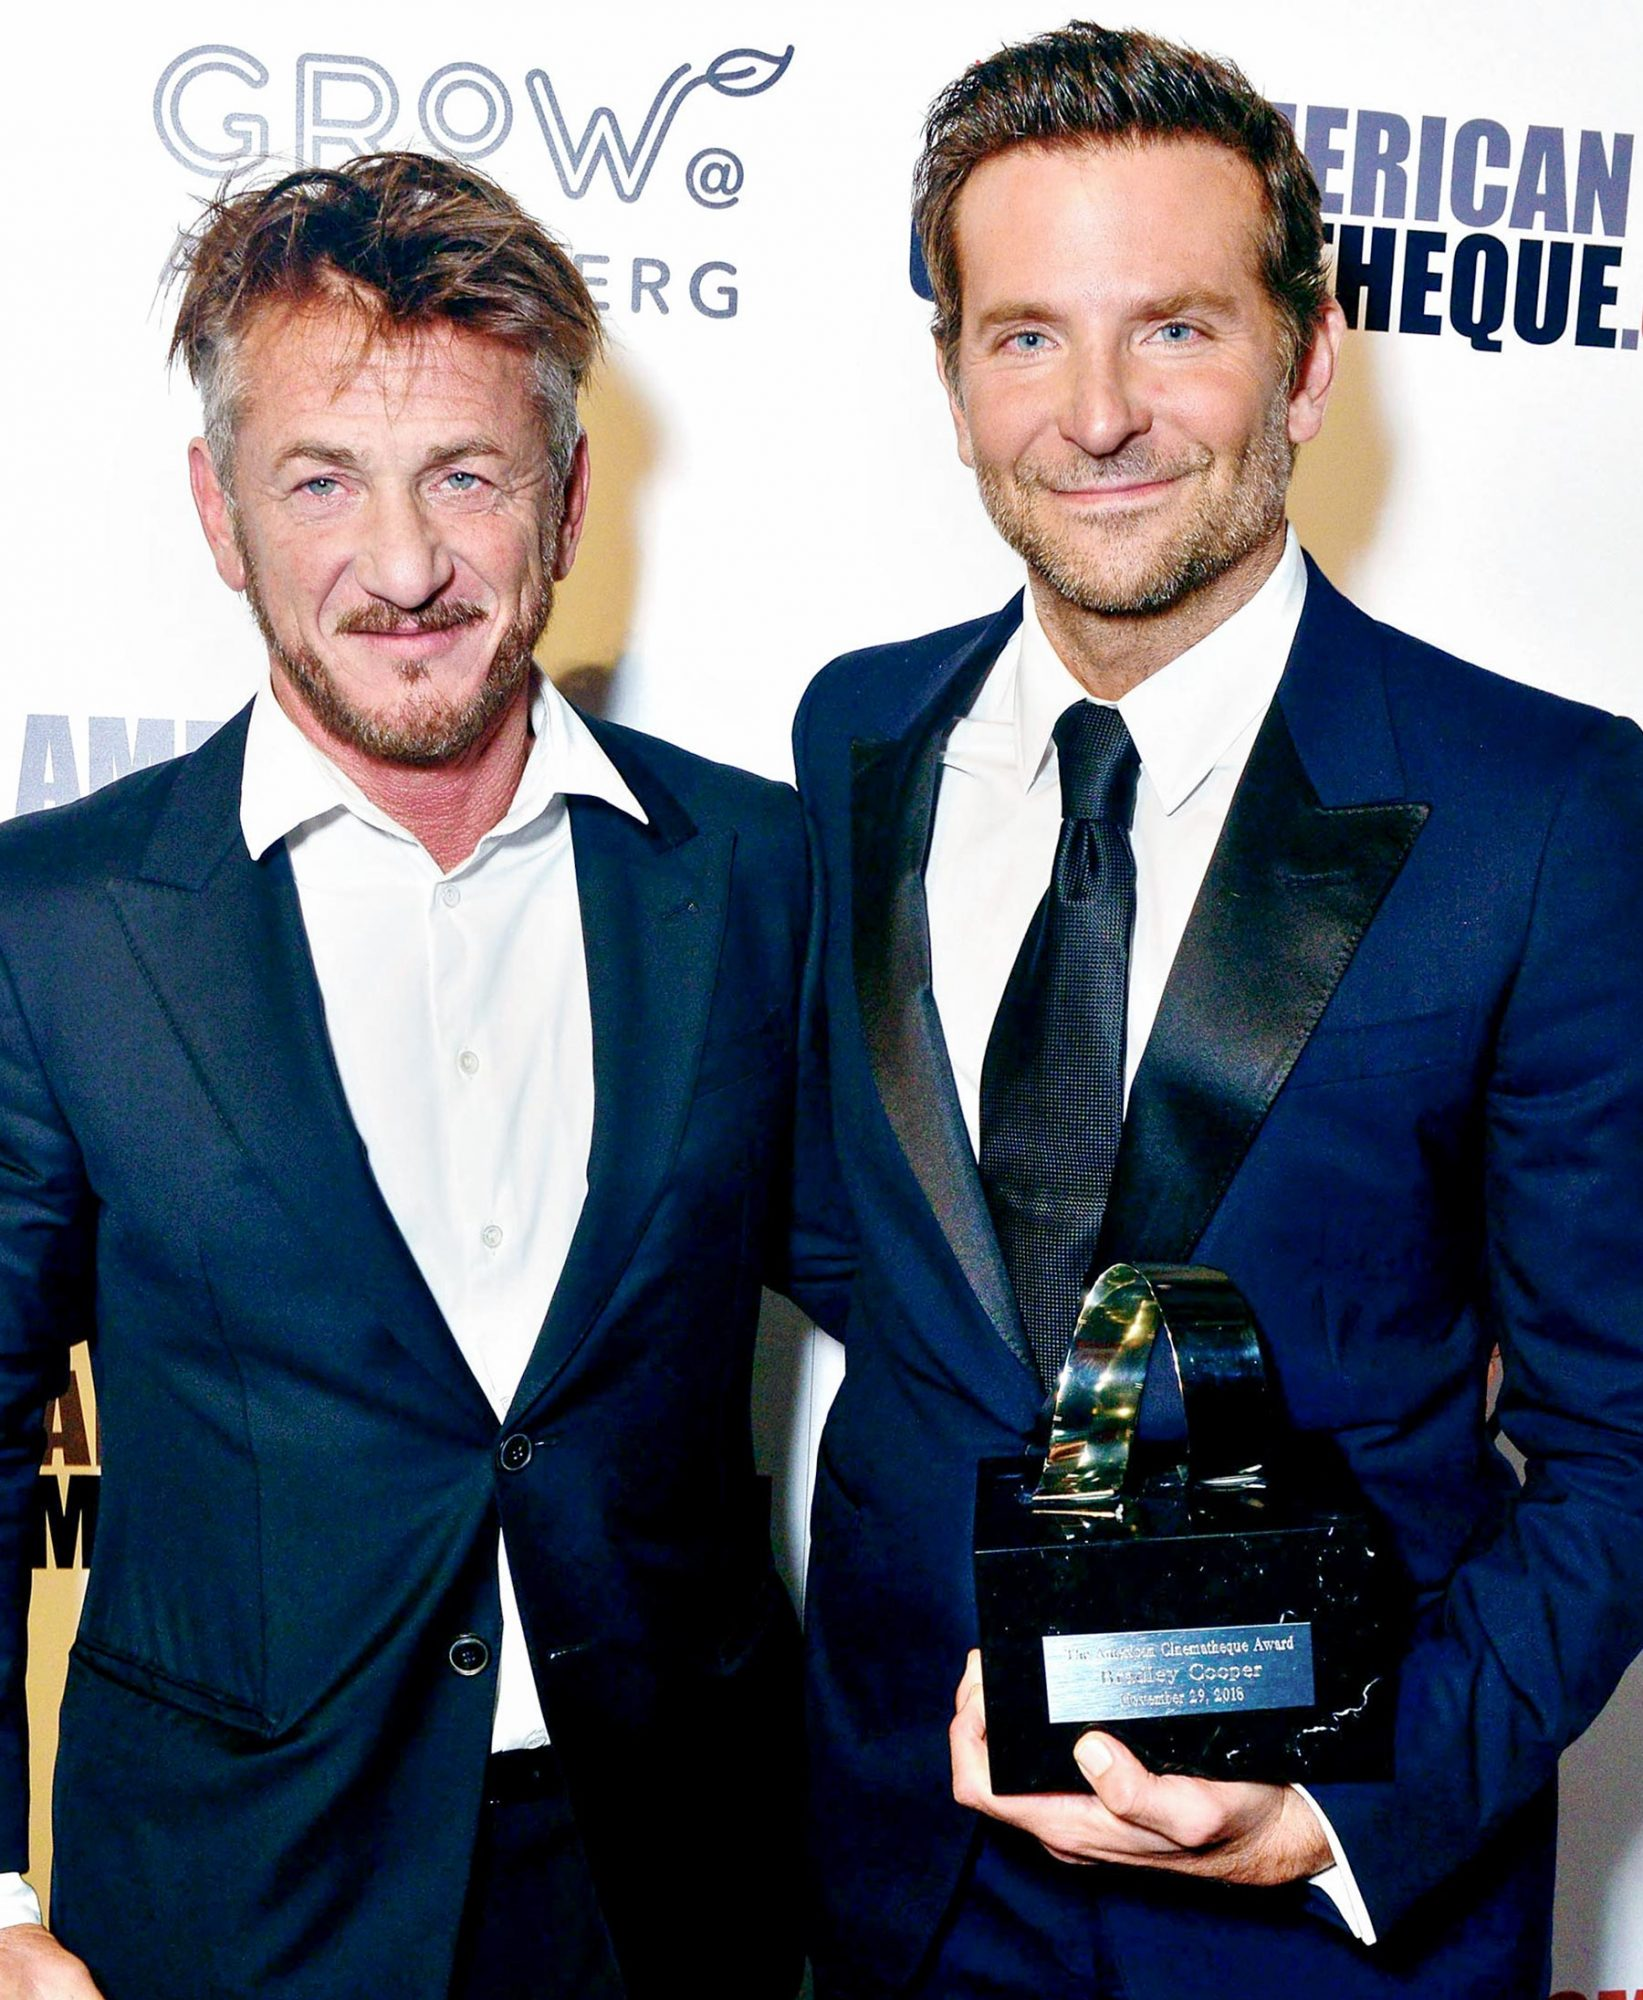 32nd American Cinematheque Award Presentation Honoring Bradley Cooper Presented by GRoW @ Annenberg. Presentation and The 4th Annual Sid Grauman Award Presented By Hill Valley, To Doug Darrow on behalf of Dolby Laboratories